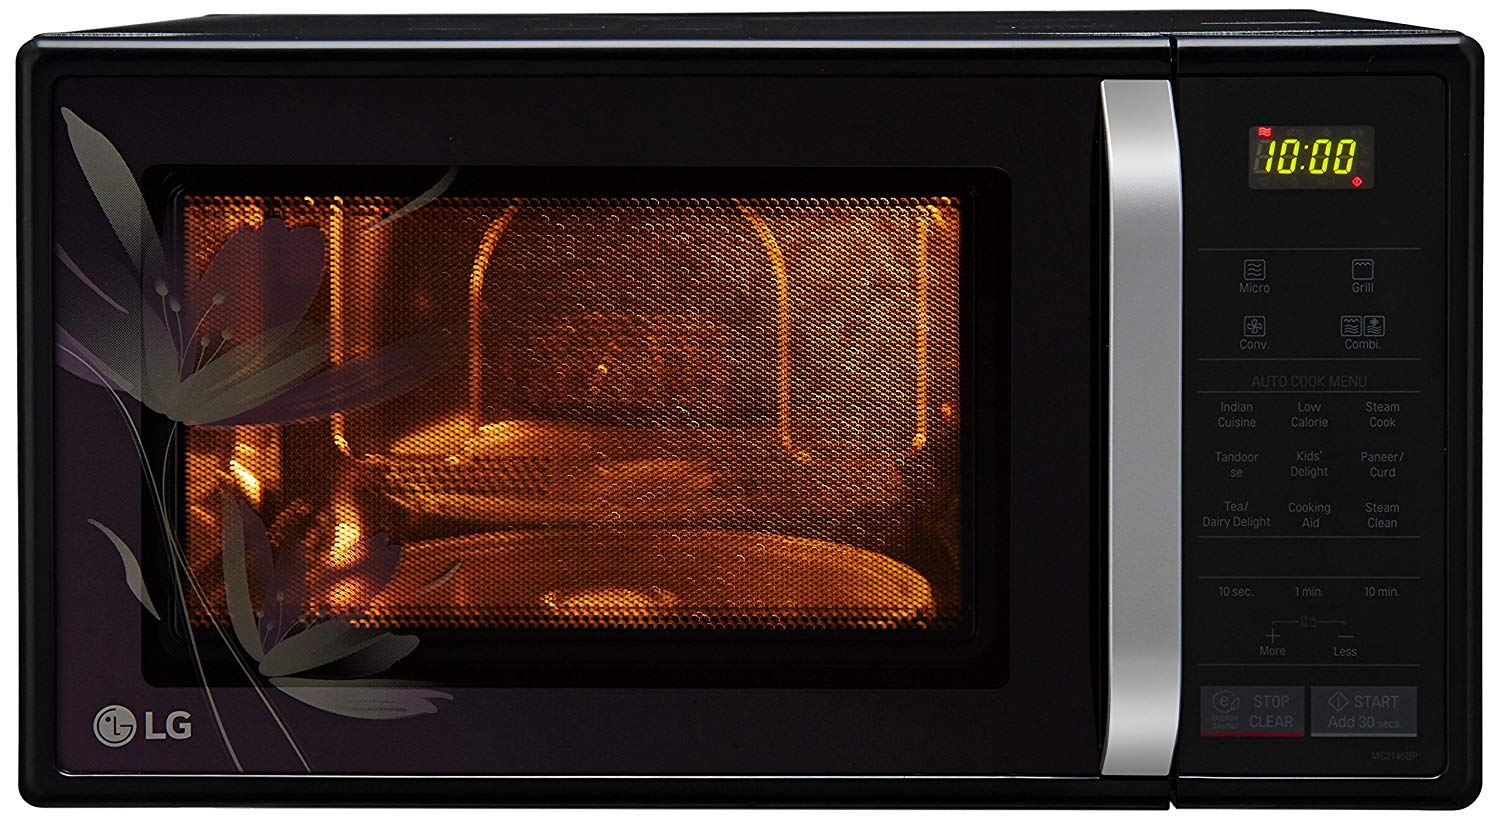 LG 21 L Convection Microwave Oven (Black)